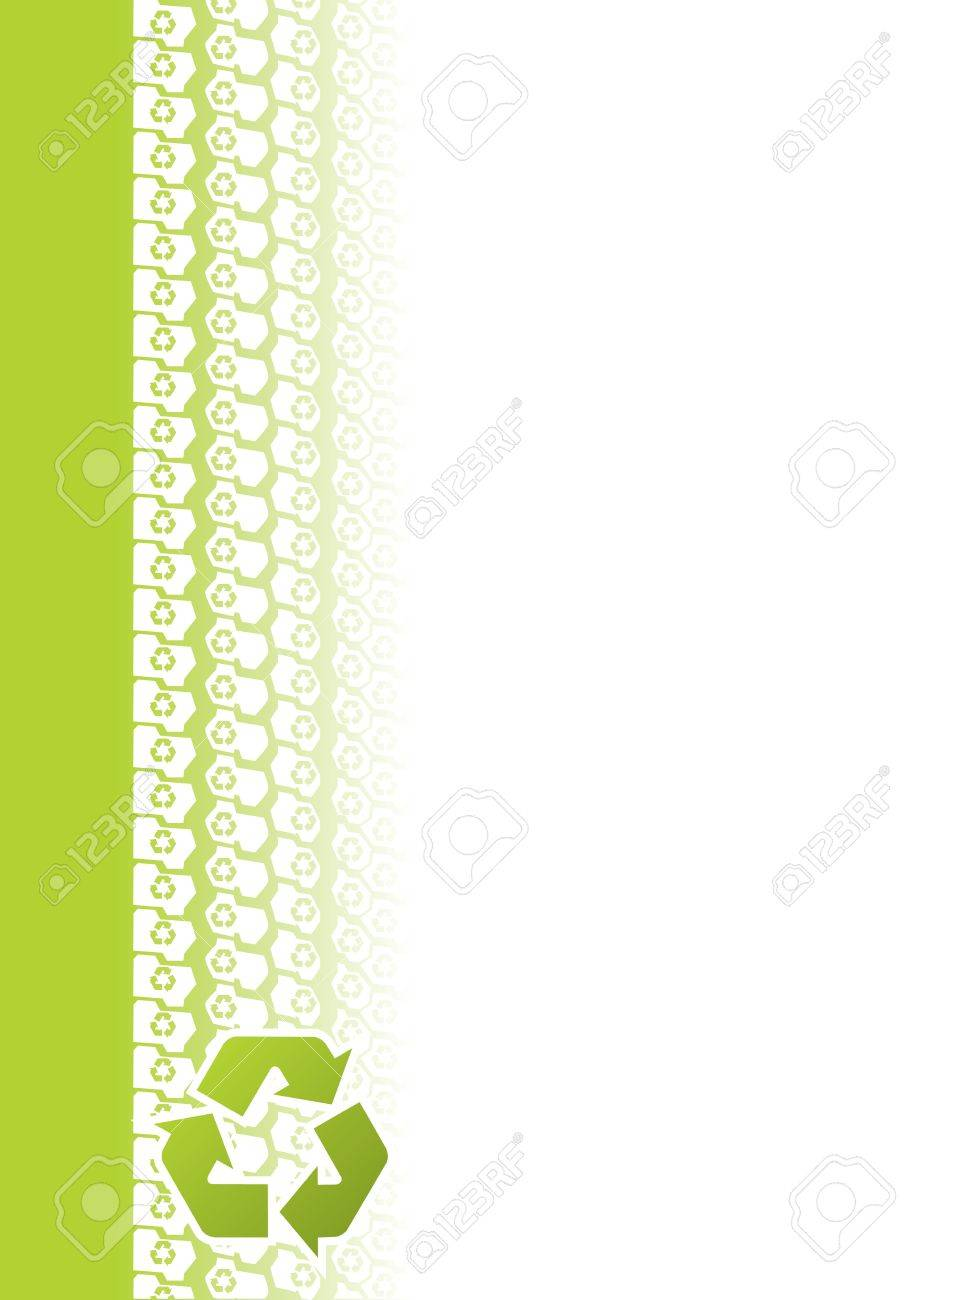 Ecological tire tread brochure design with recycle sign Stock Vector - 18217435